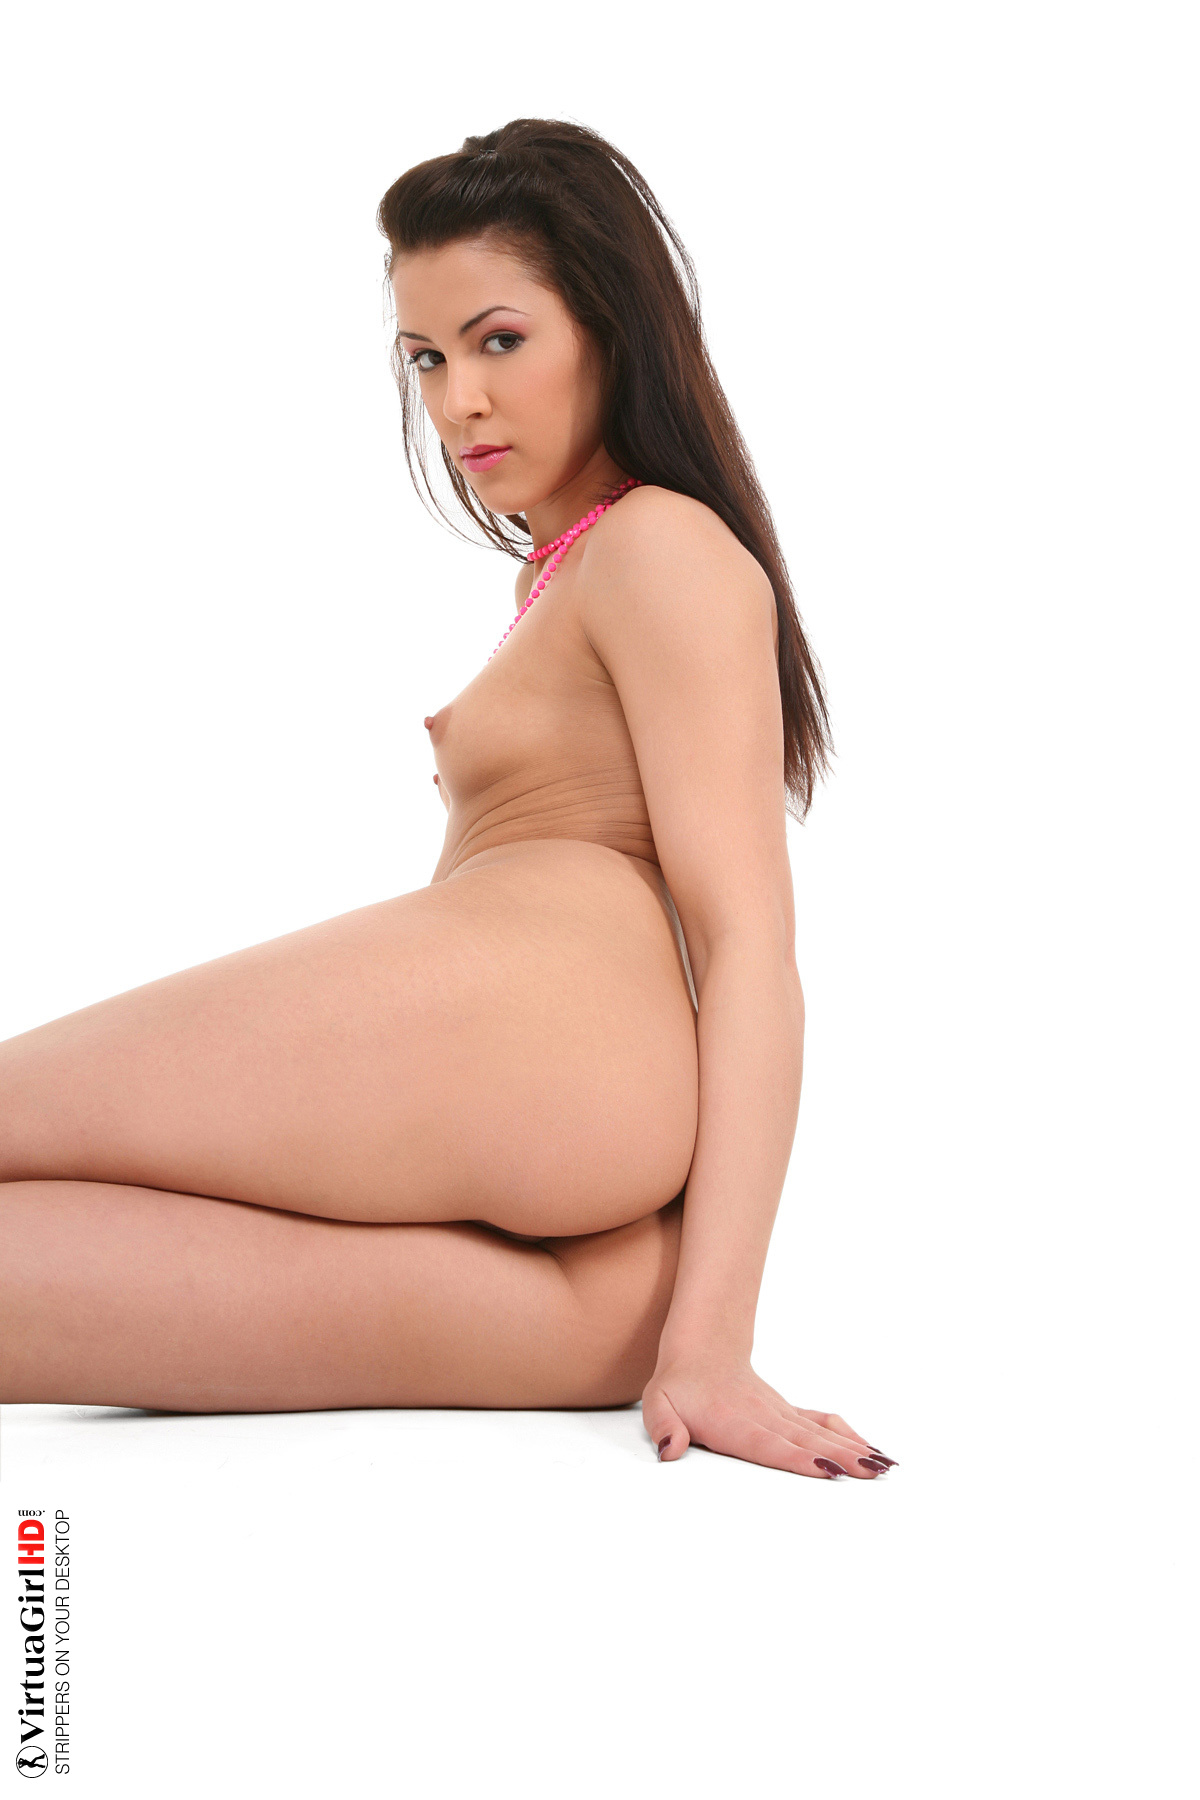 naked girls wallpapers